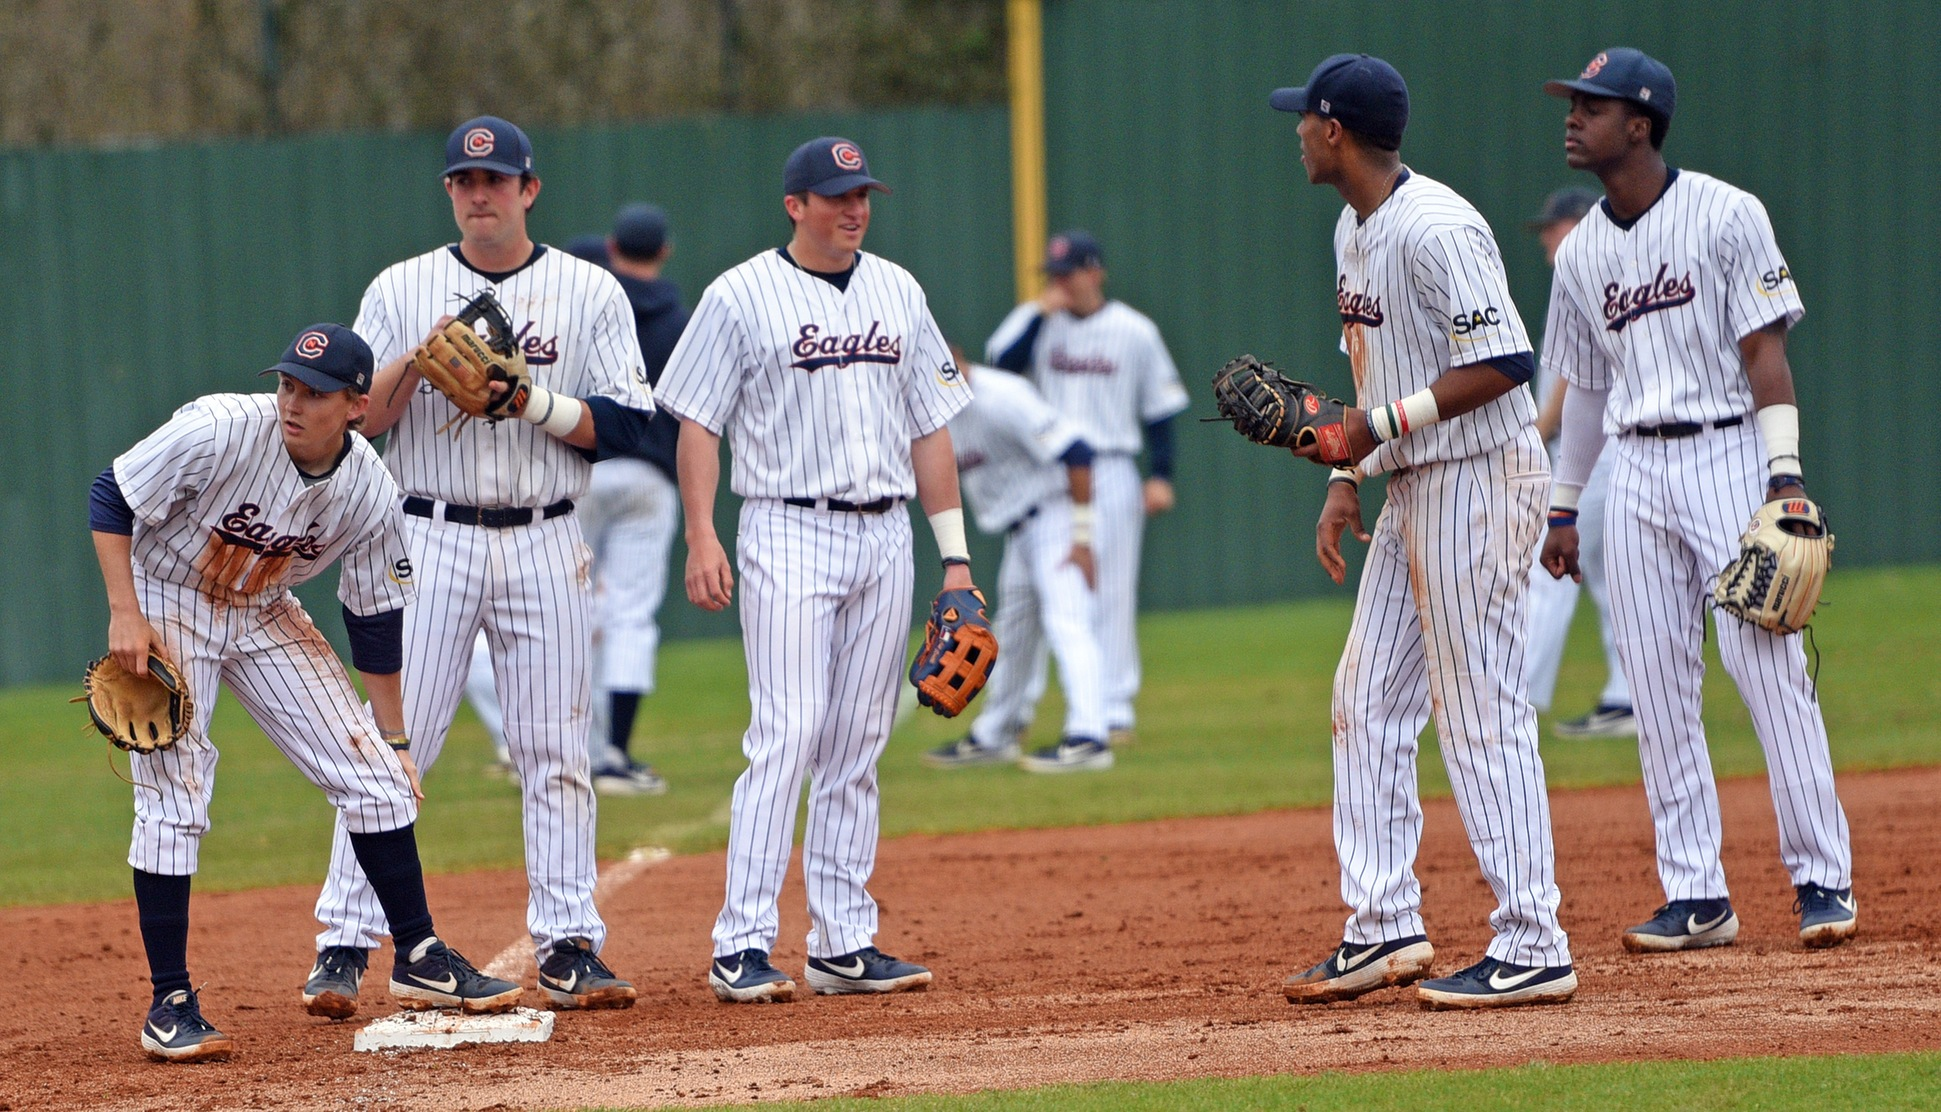 Griffin's group seeks series win with Tusculum in town